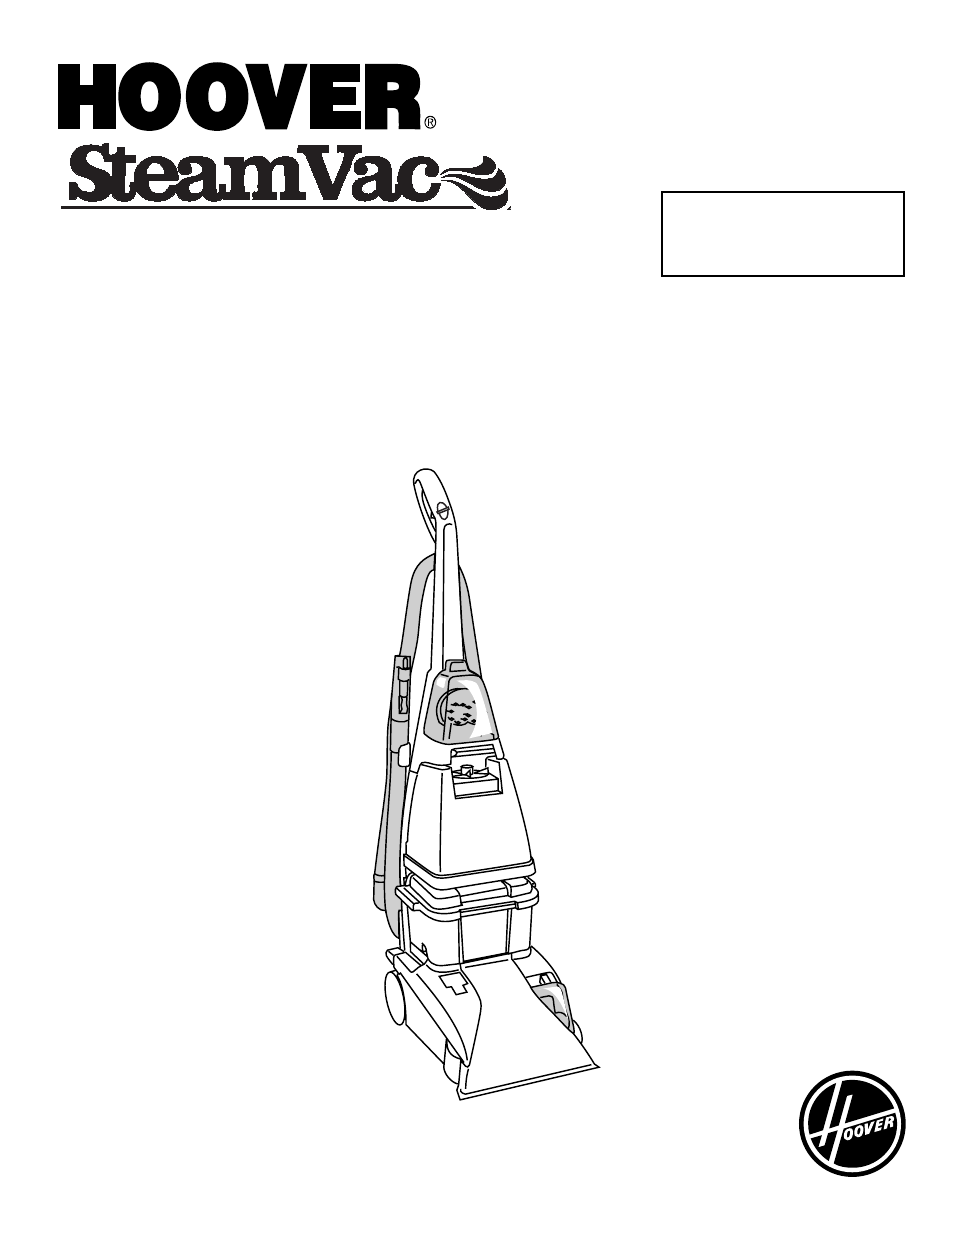 Hoover Steamvac F Users Manual